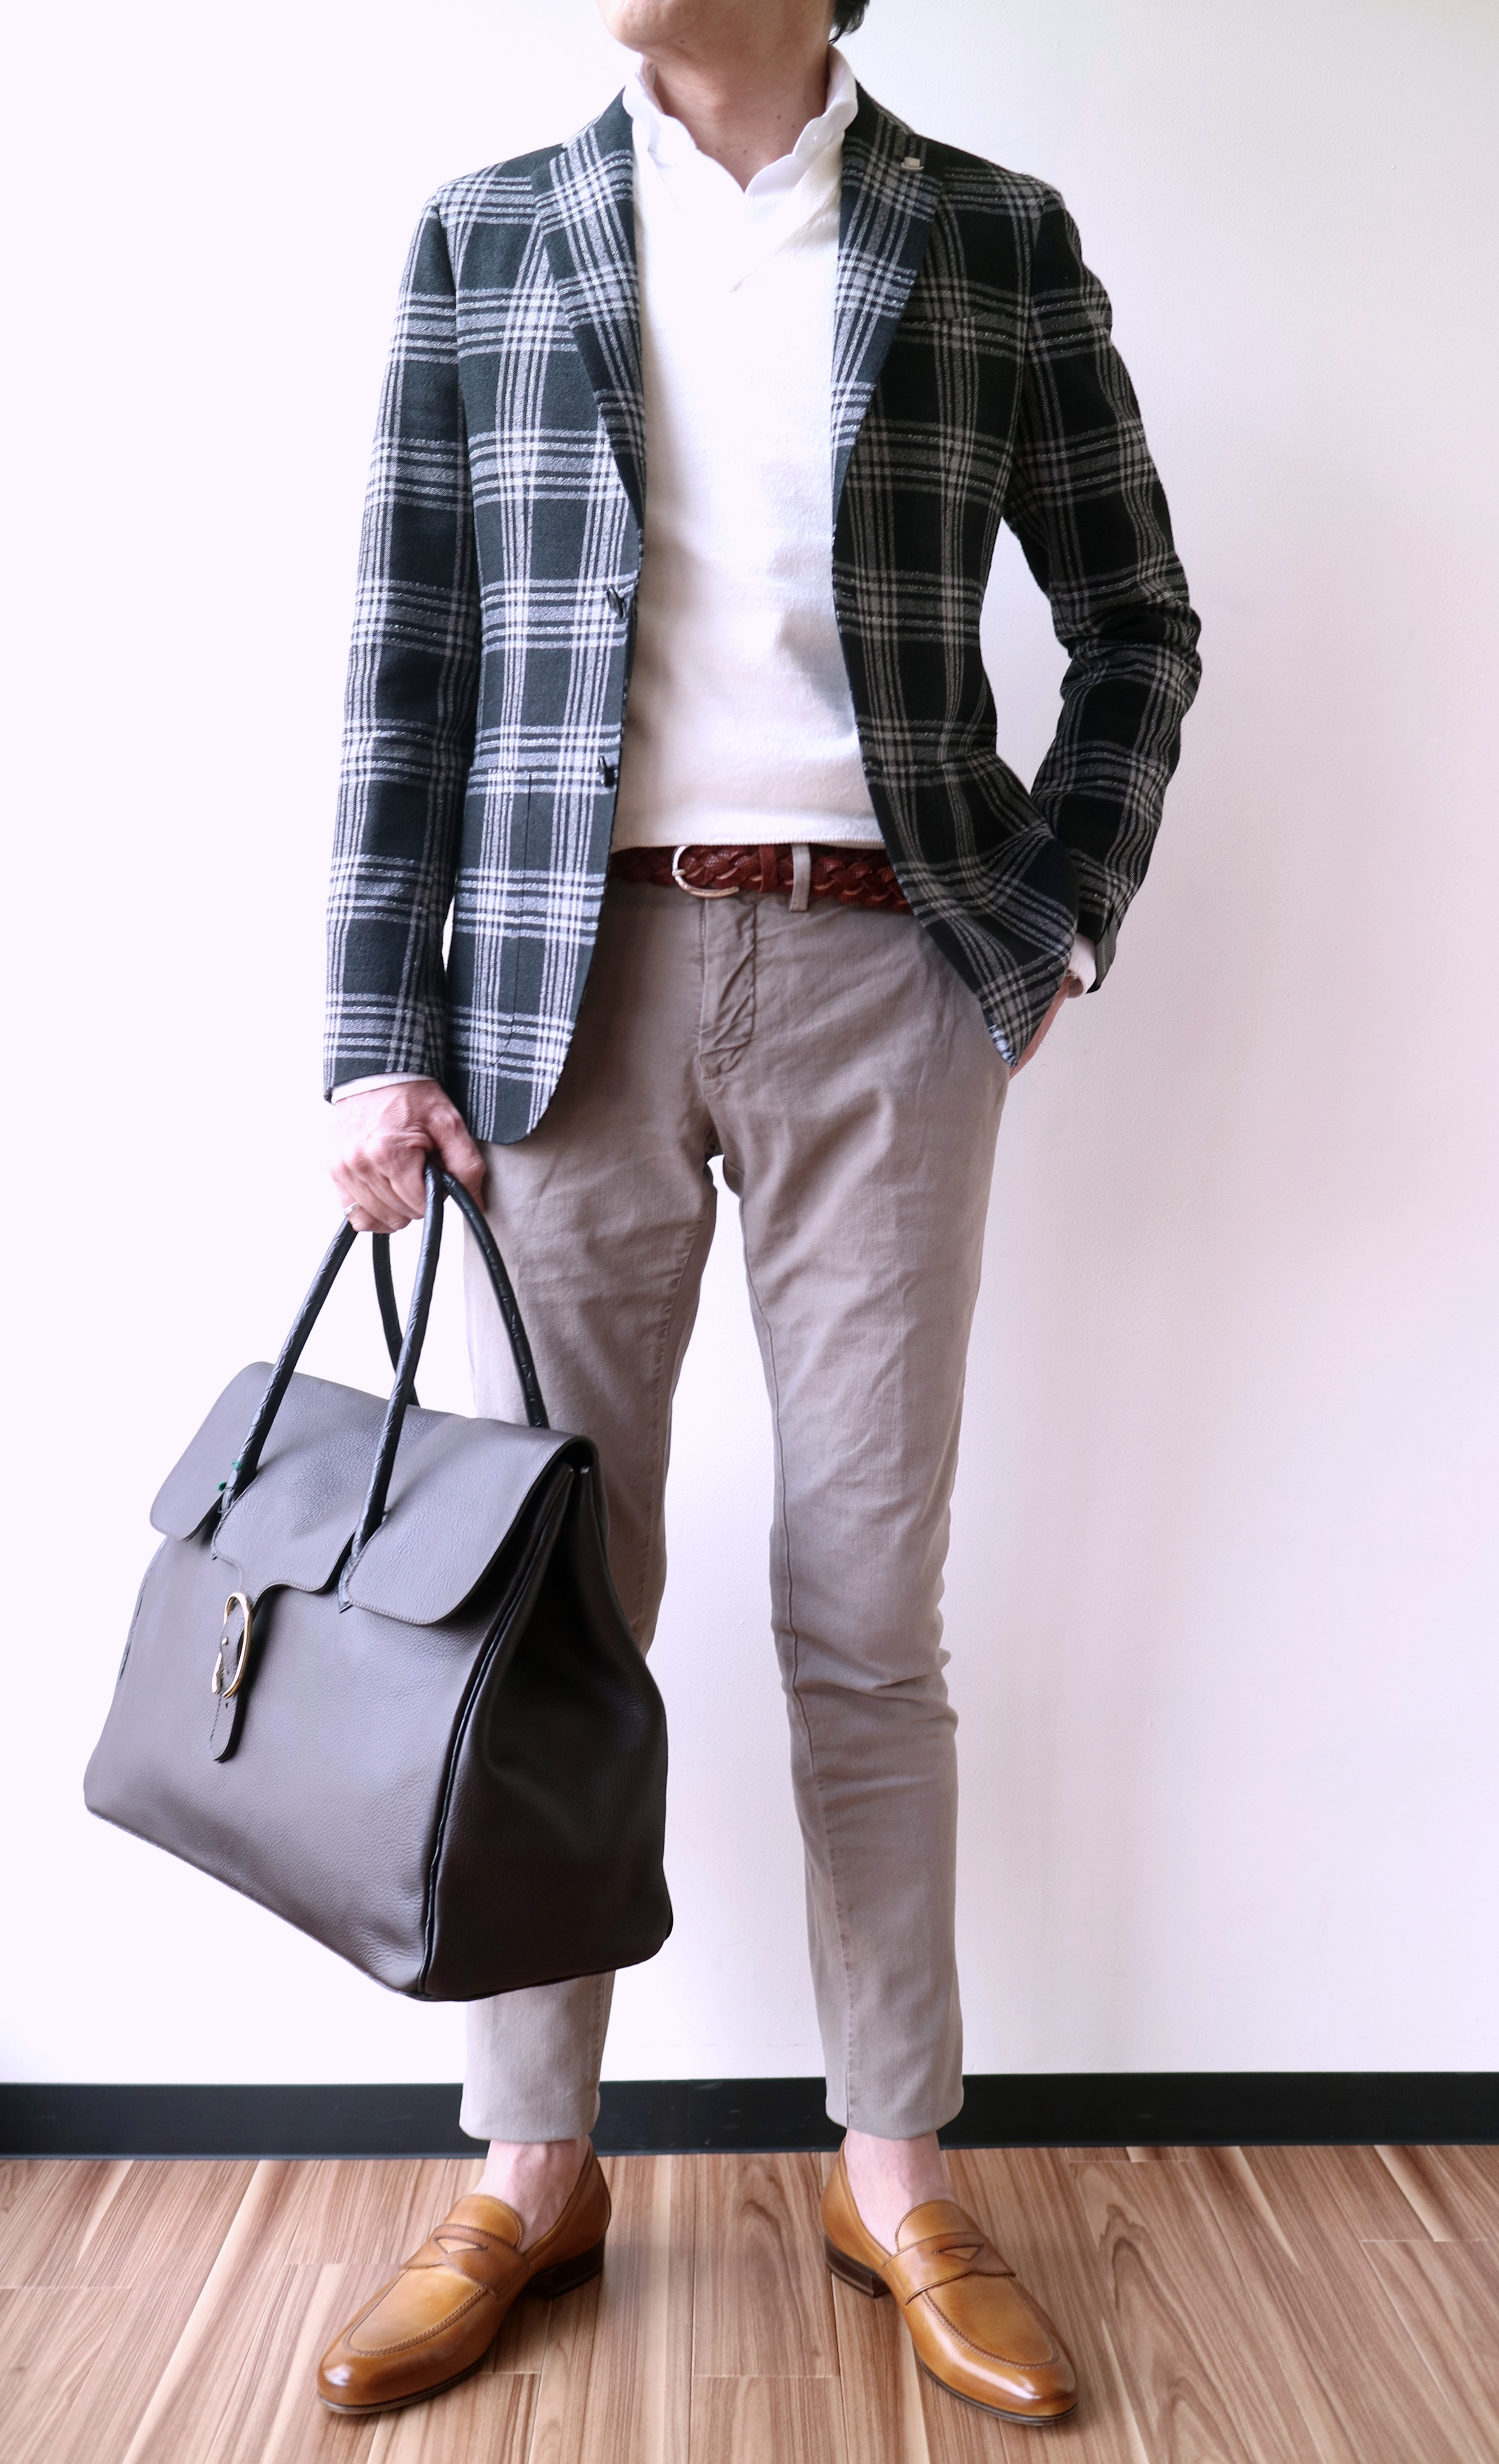 201606_mens-totebag-20select_025